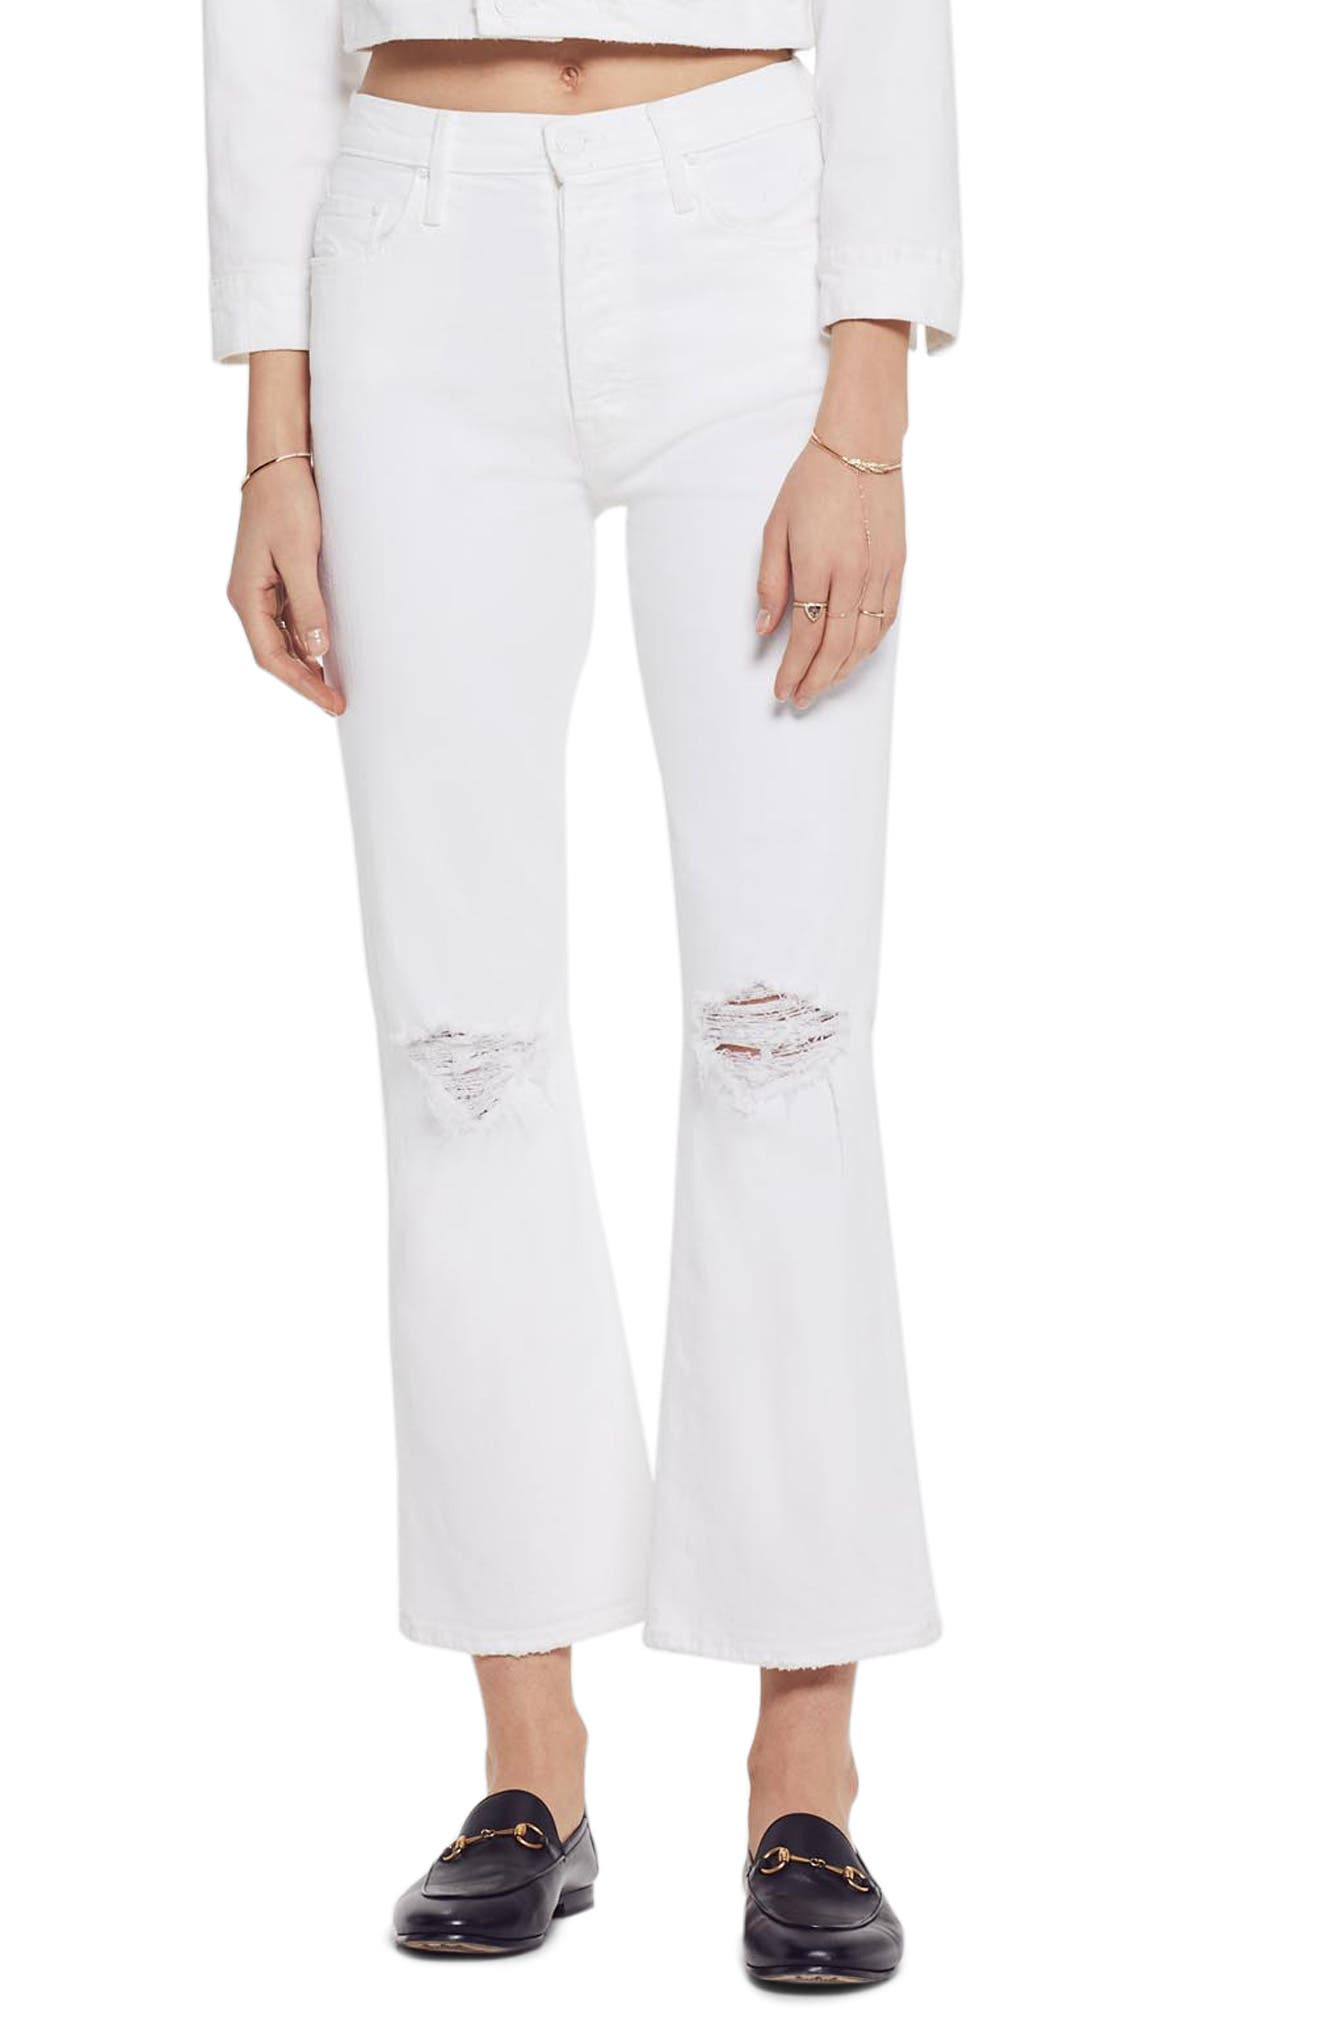 MOTHER, The Tripper High Waist Crop Bootcut Jeans, Main thumbnail 1, color, ALMOST INNOCENT